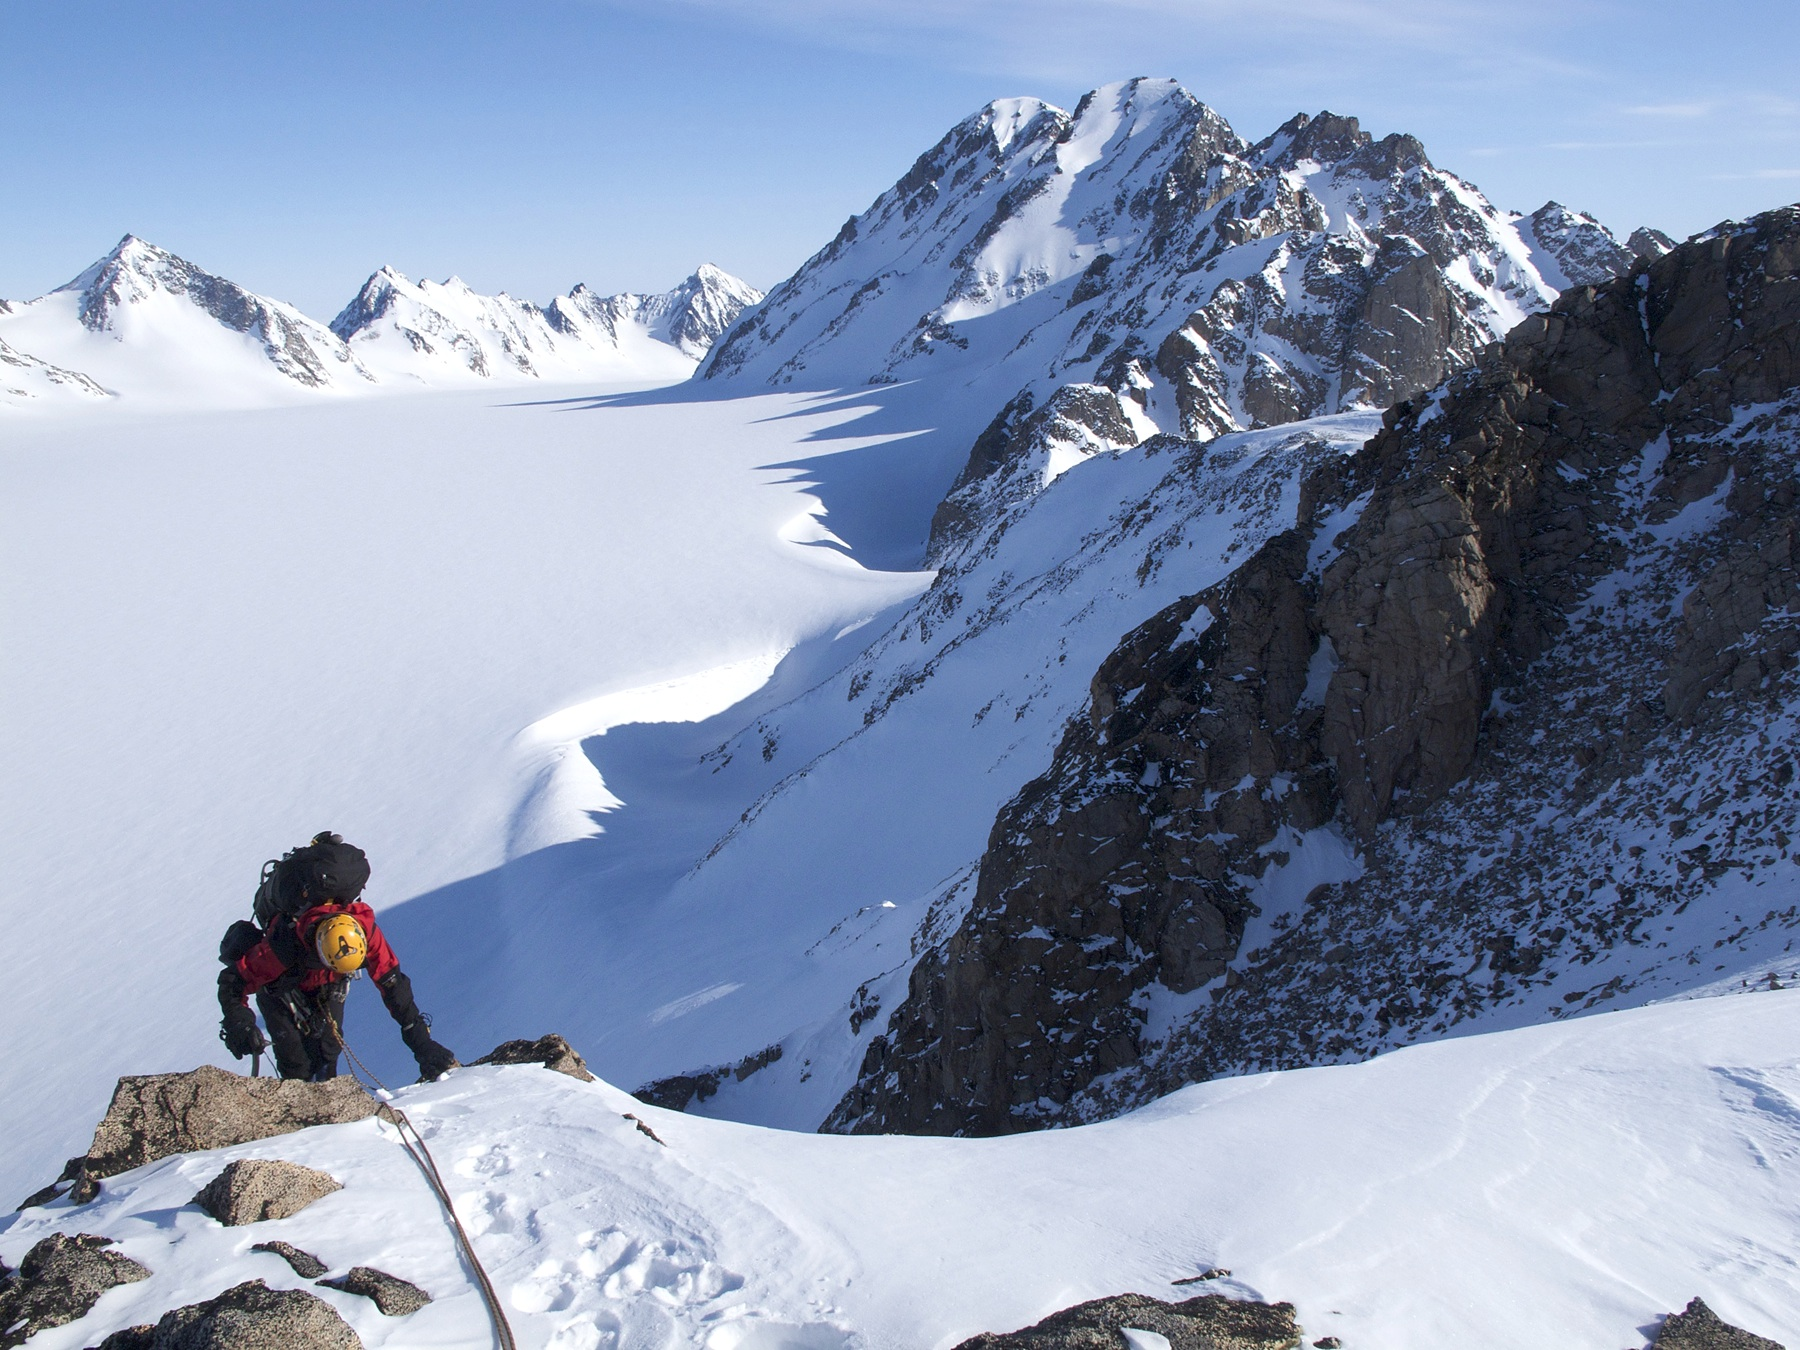 Approaching the summit of Castle Peak with Mt Mighty behind